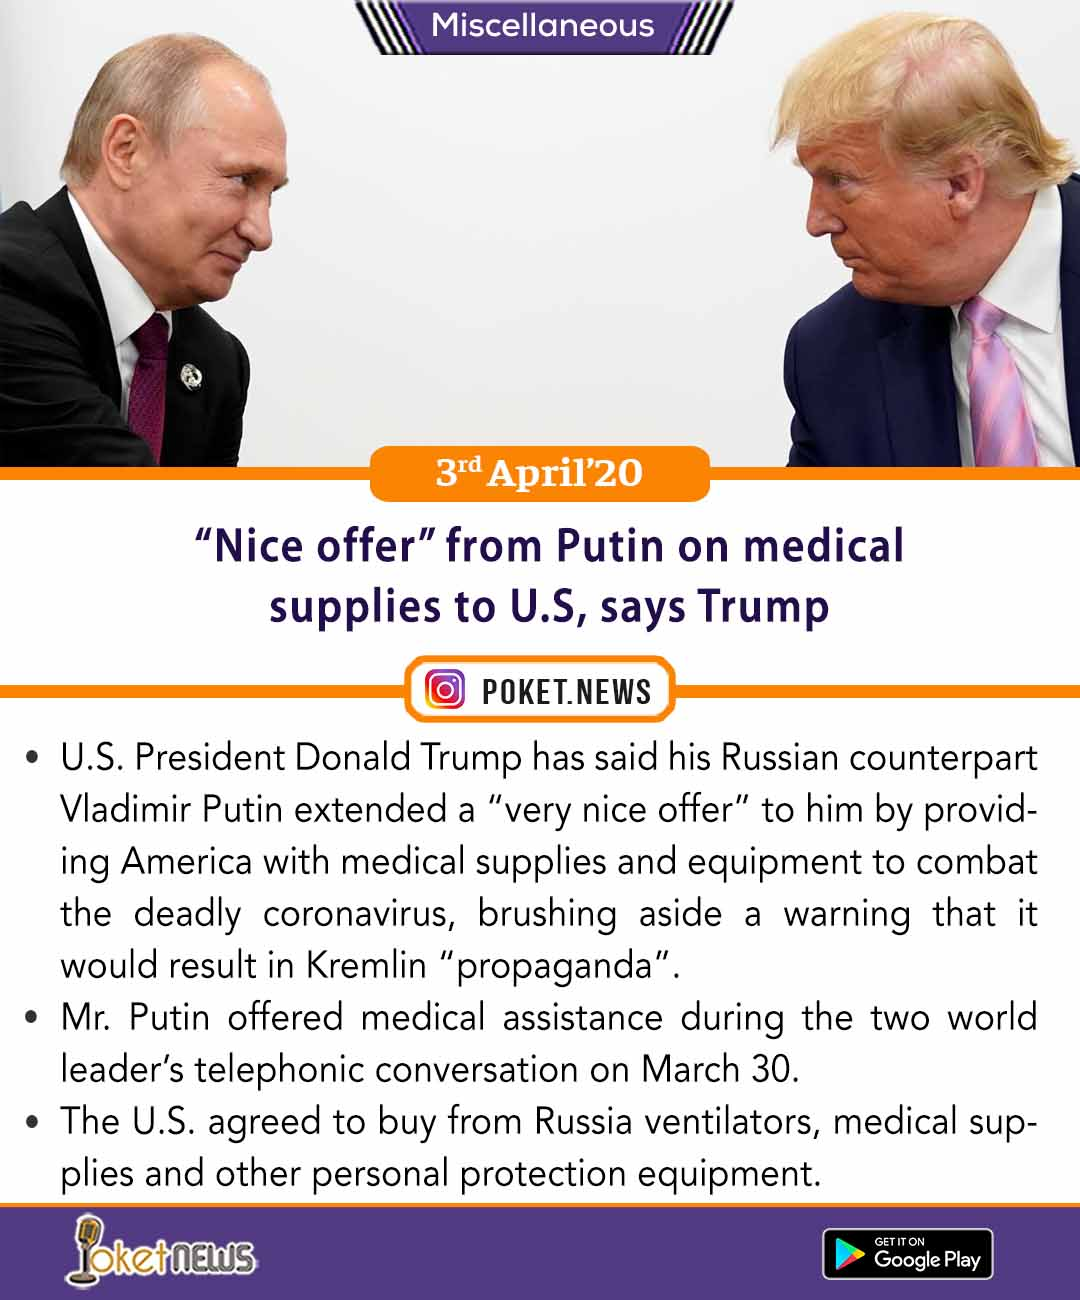 'Nice offer' from Putin on medical supplies to U.S, says Trump